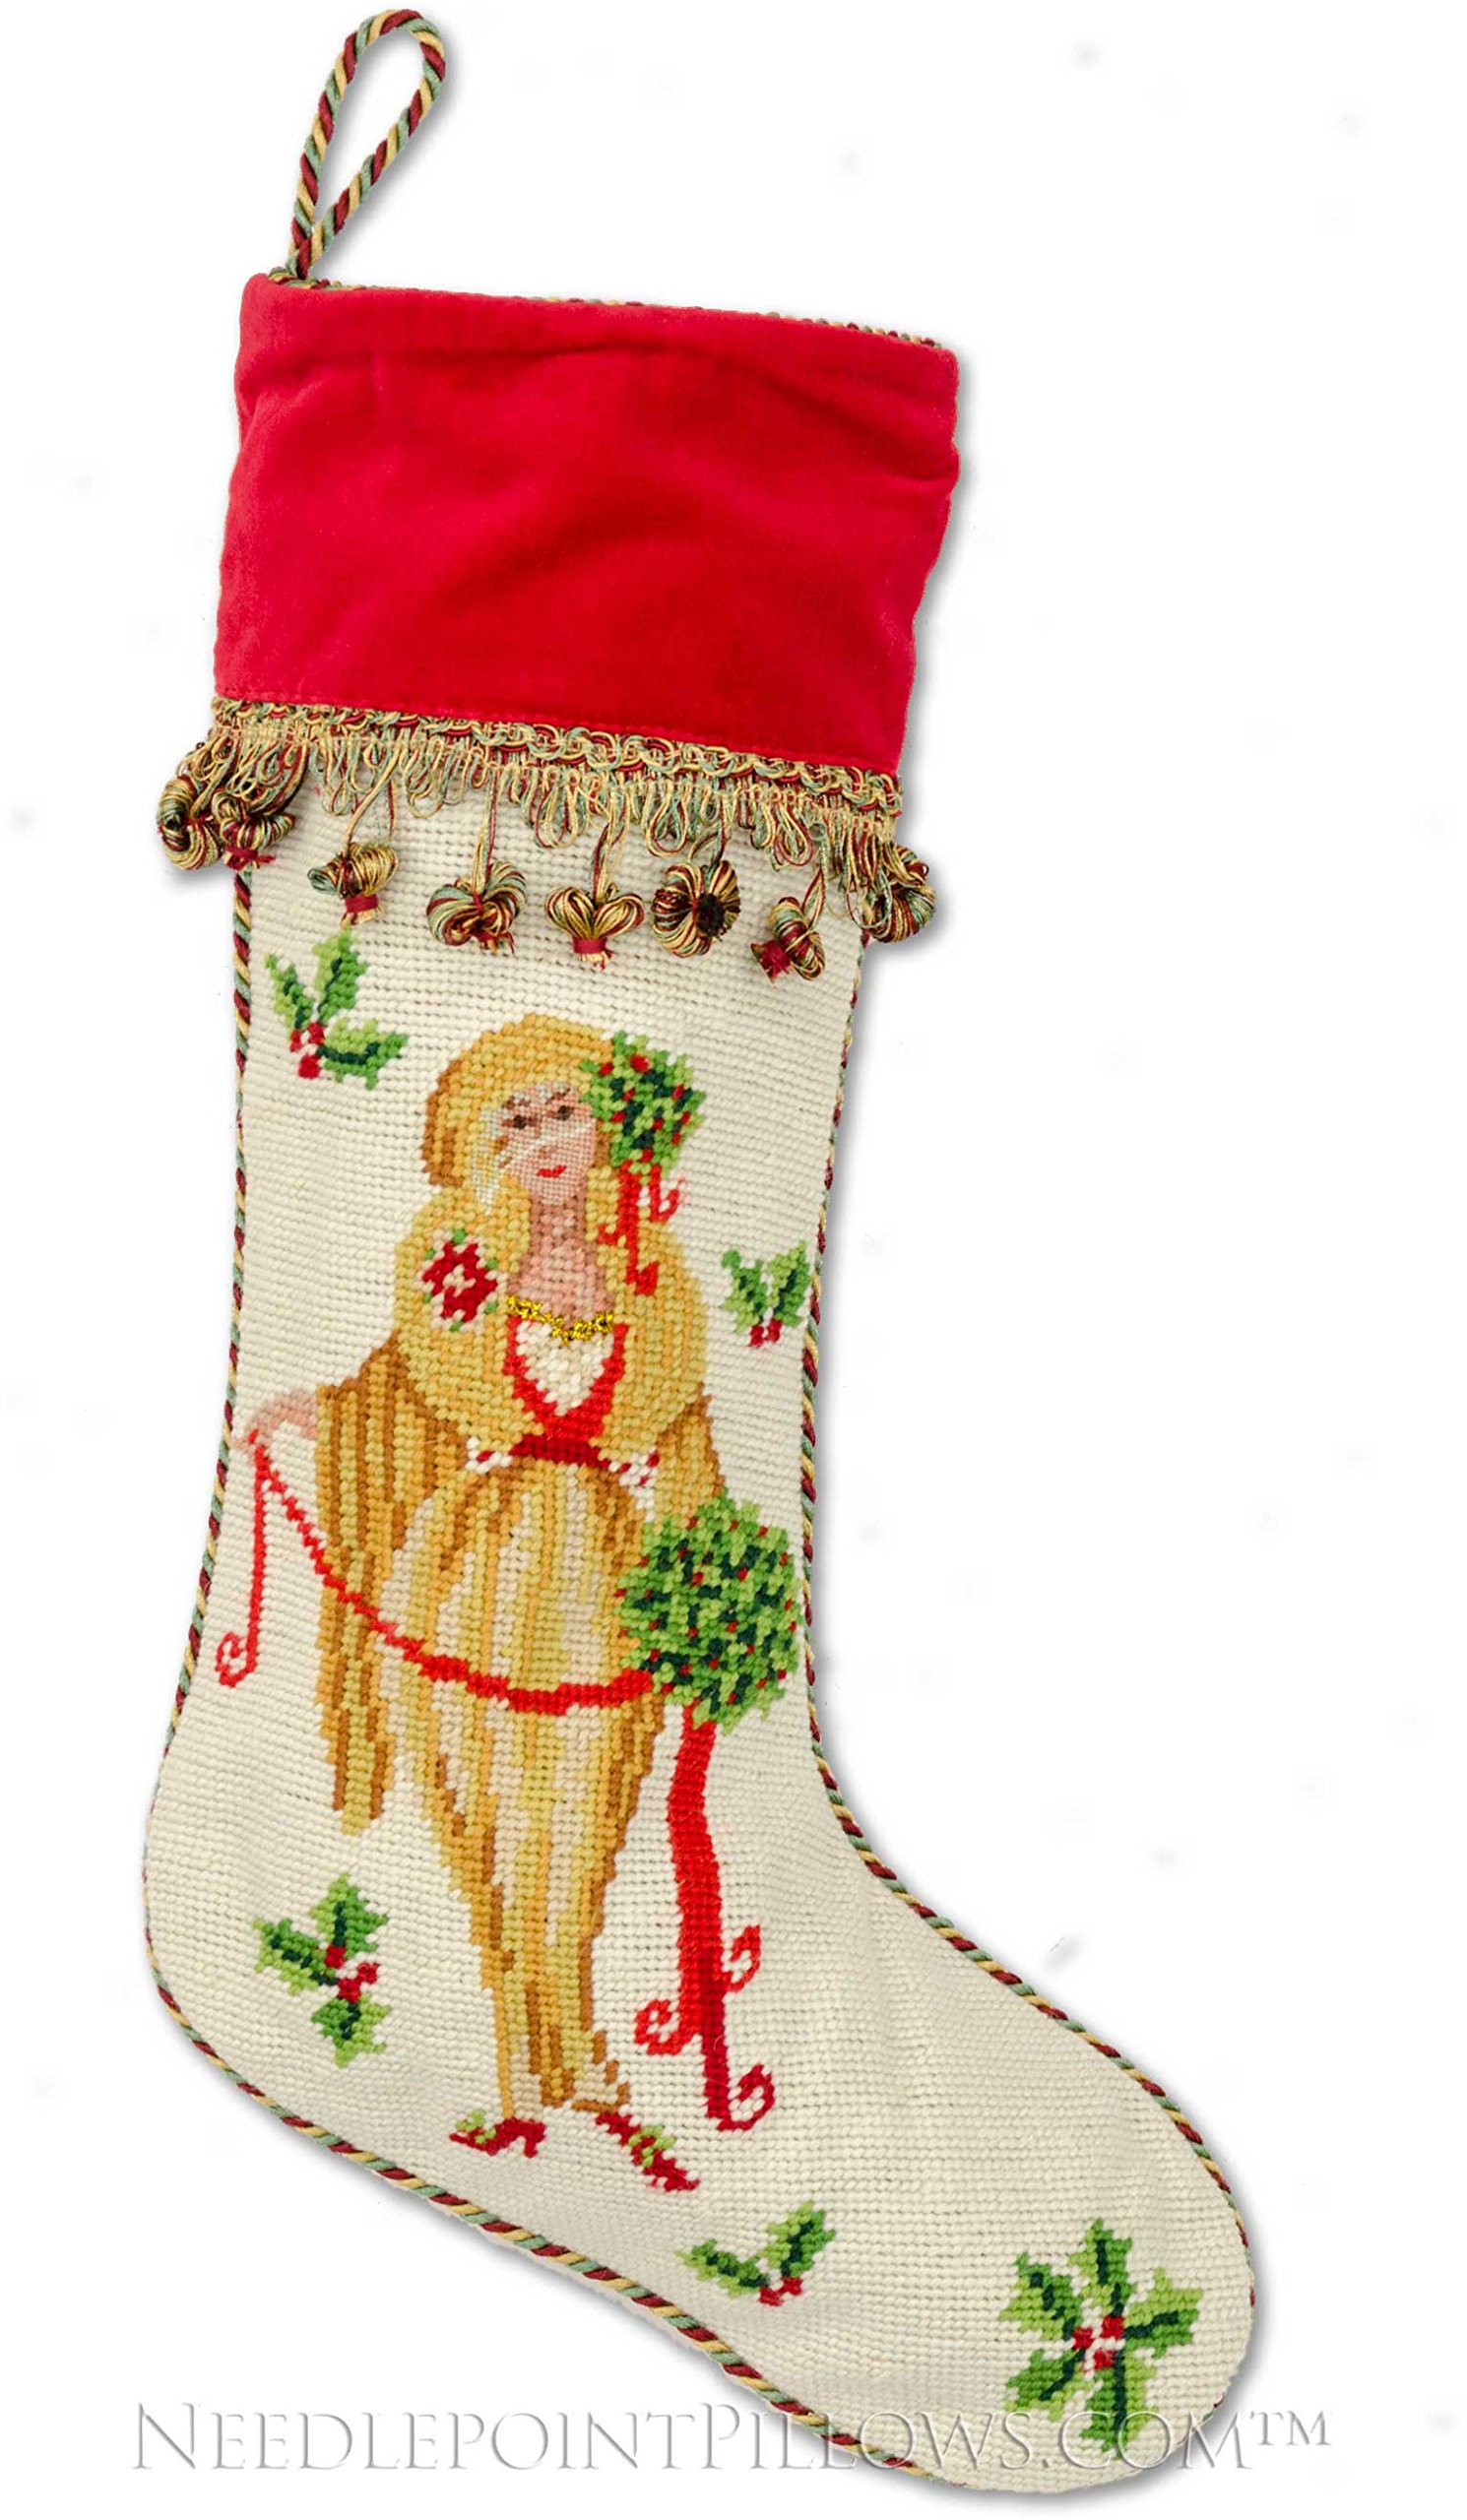 Limited Edition Handmade 100% Wool Decorative Designer Holiday Nutcracker Lady Christmas Needlepoint Stocking. 12'' x 18''. (Not A Kit)